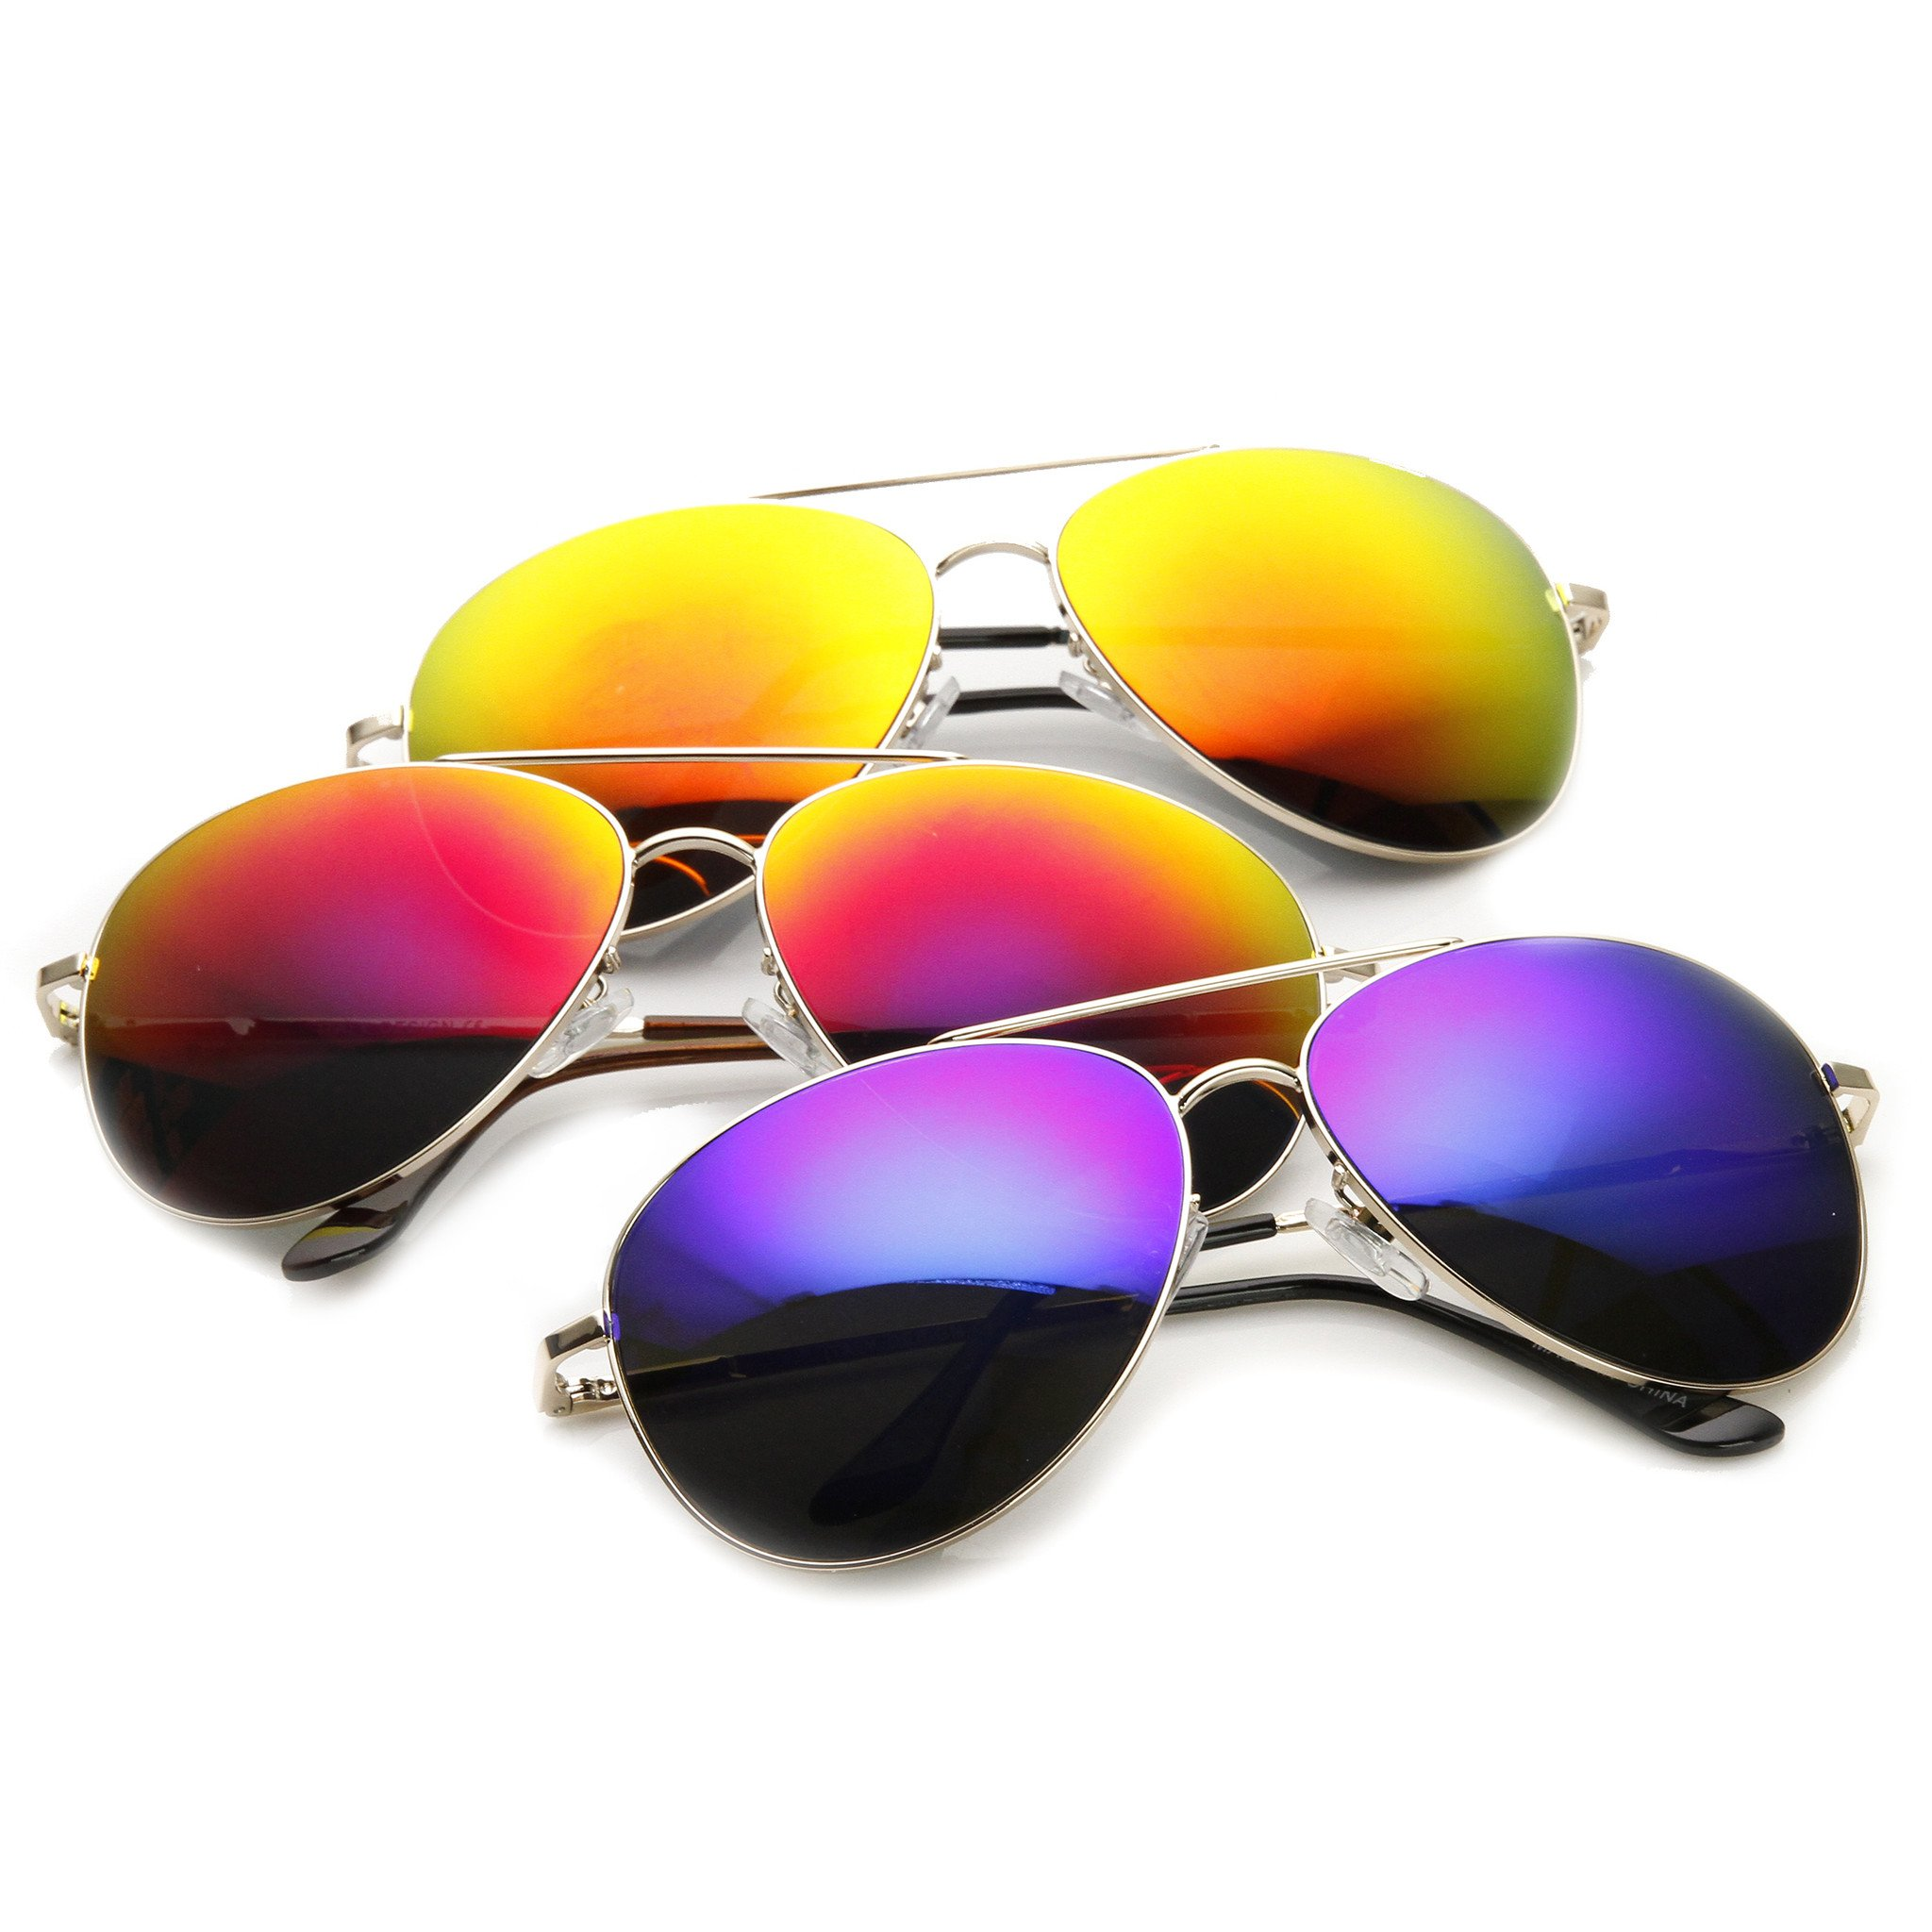 SWG Eyewear Silver Aviator Reflective Mirror UV400 Sunglasses Summer Collection Triple Pack